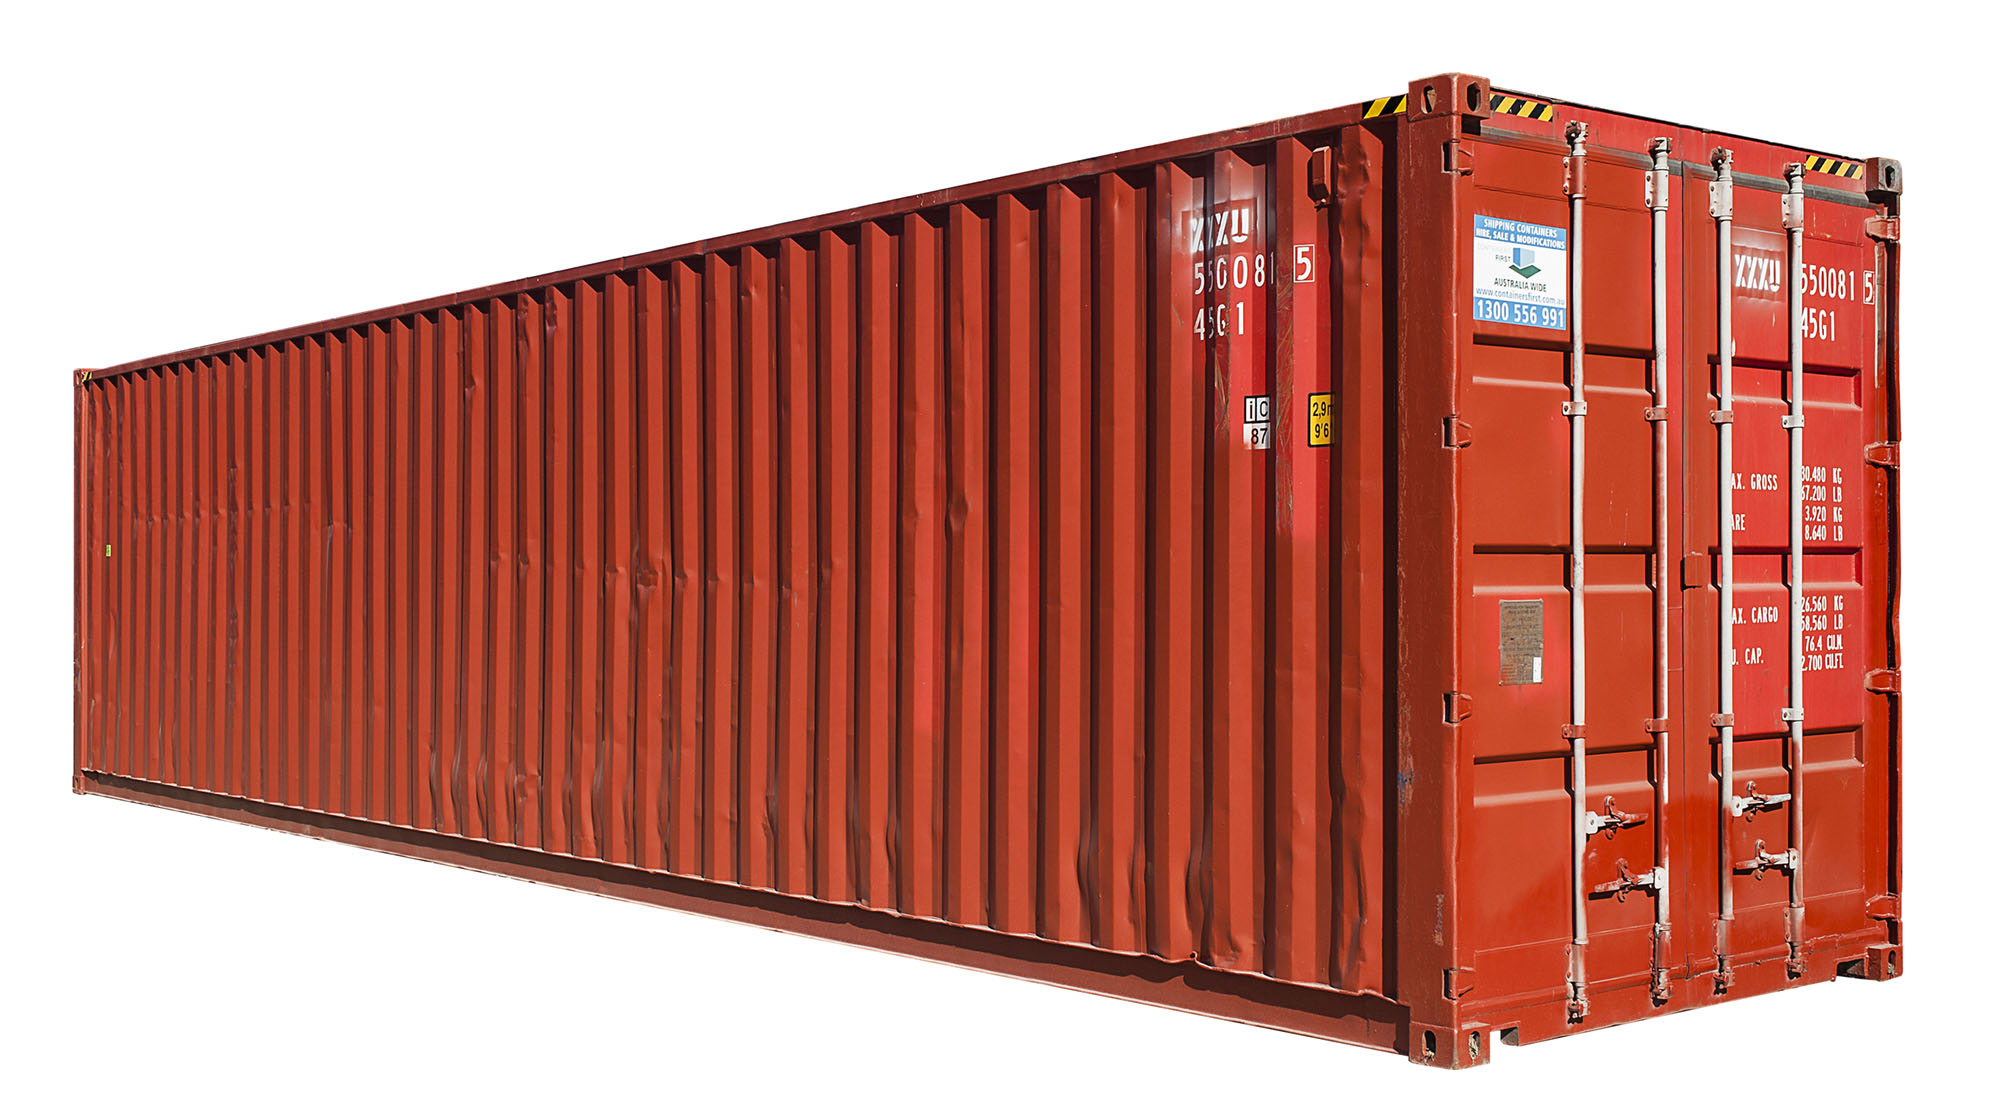 Container Hire Easy Lift Freight solutions